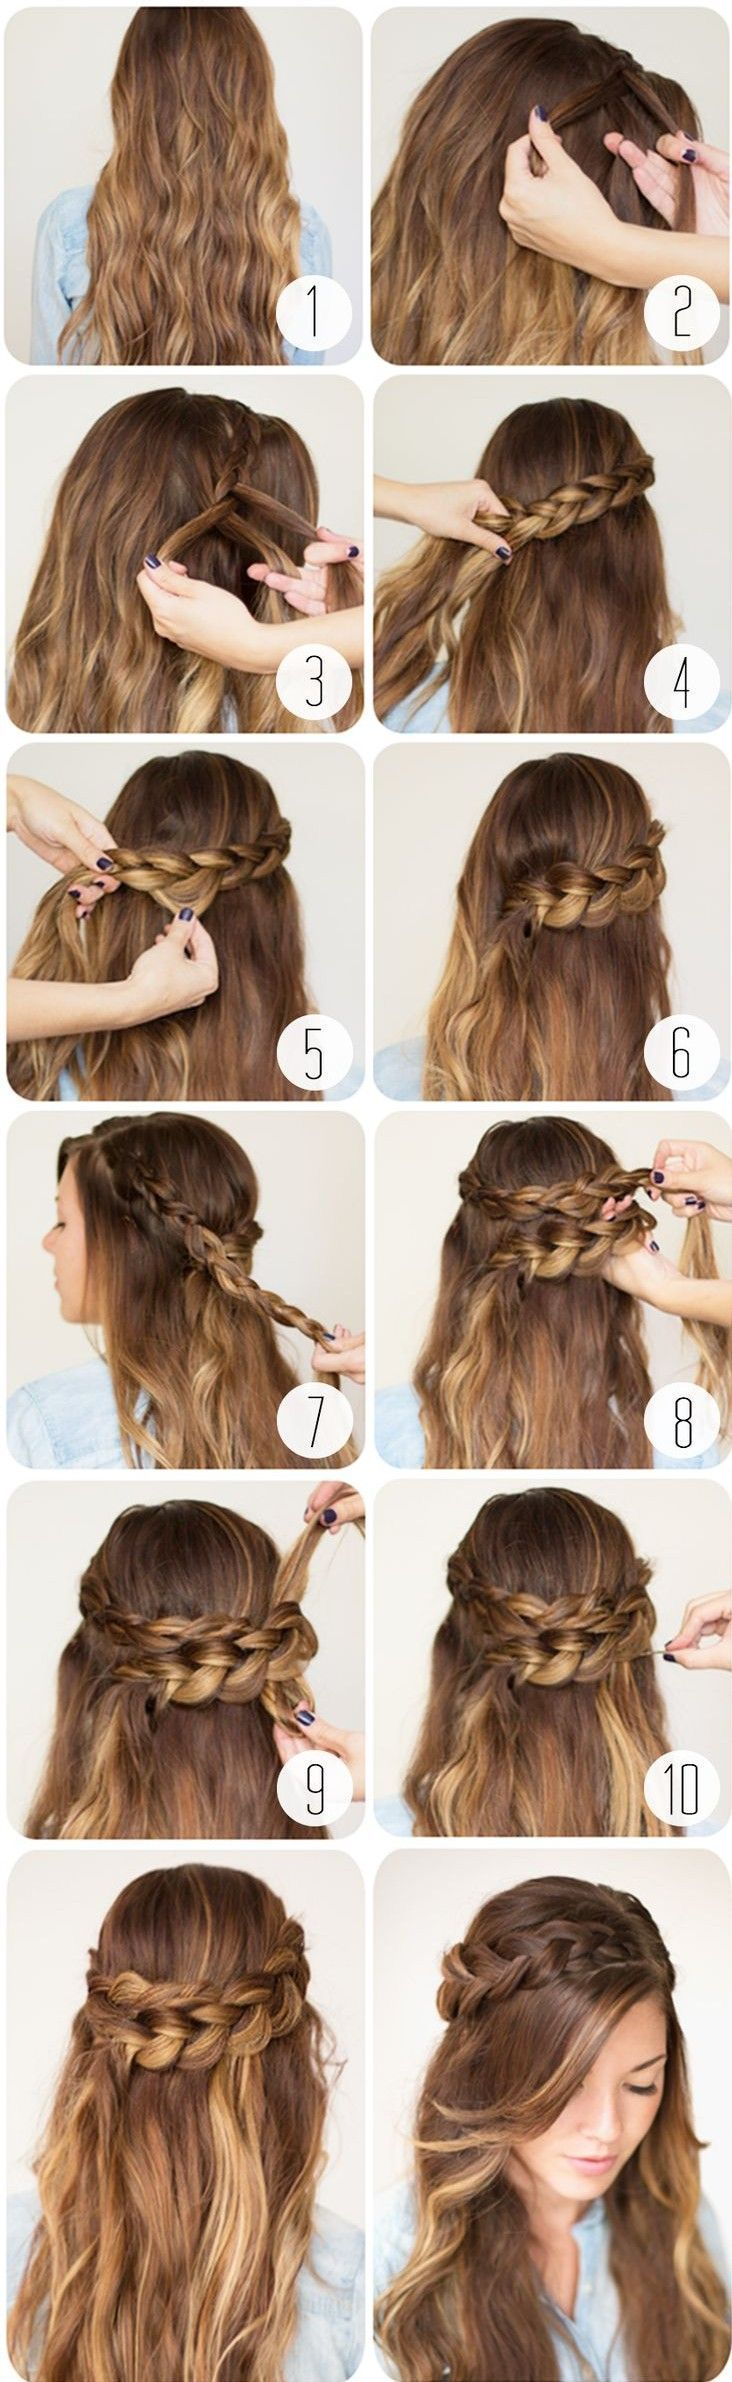 Pin by alison raye on tumblr hairstyles pinterest crown braids